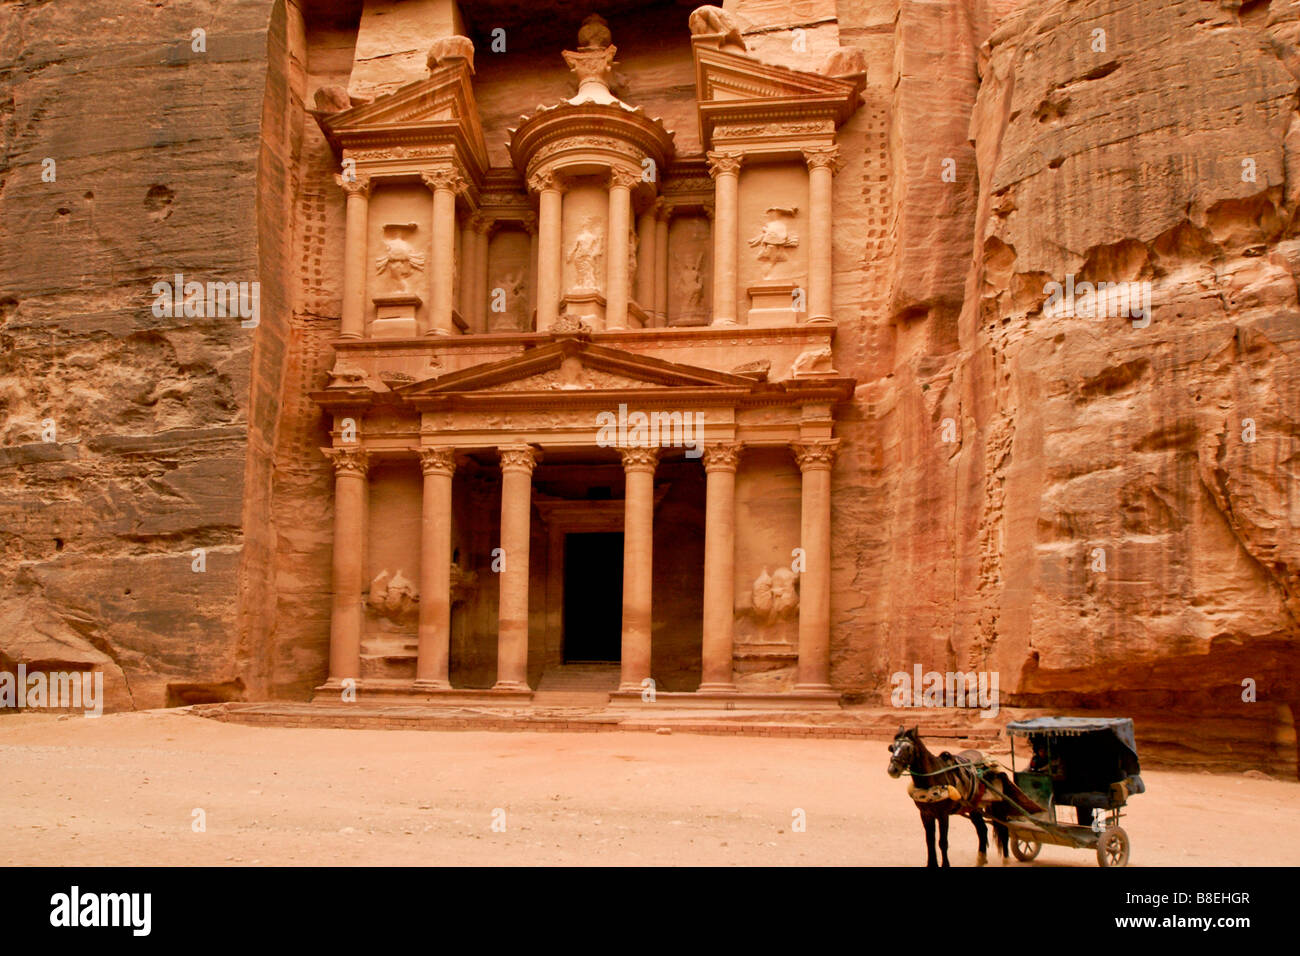 Horse carriage at the Treasury in Petra, Jordan - Stock Image